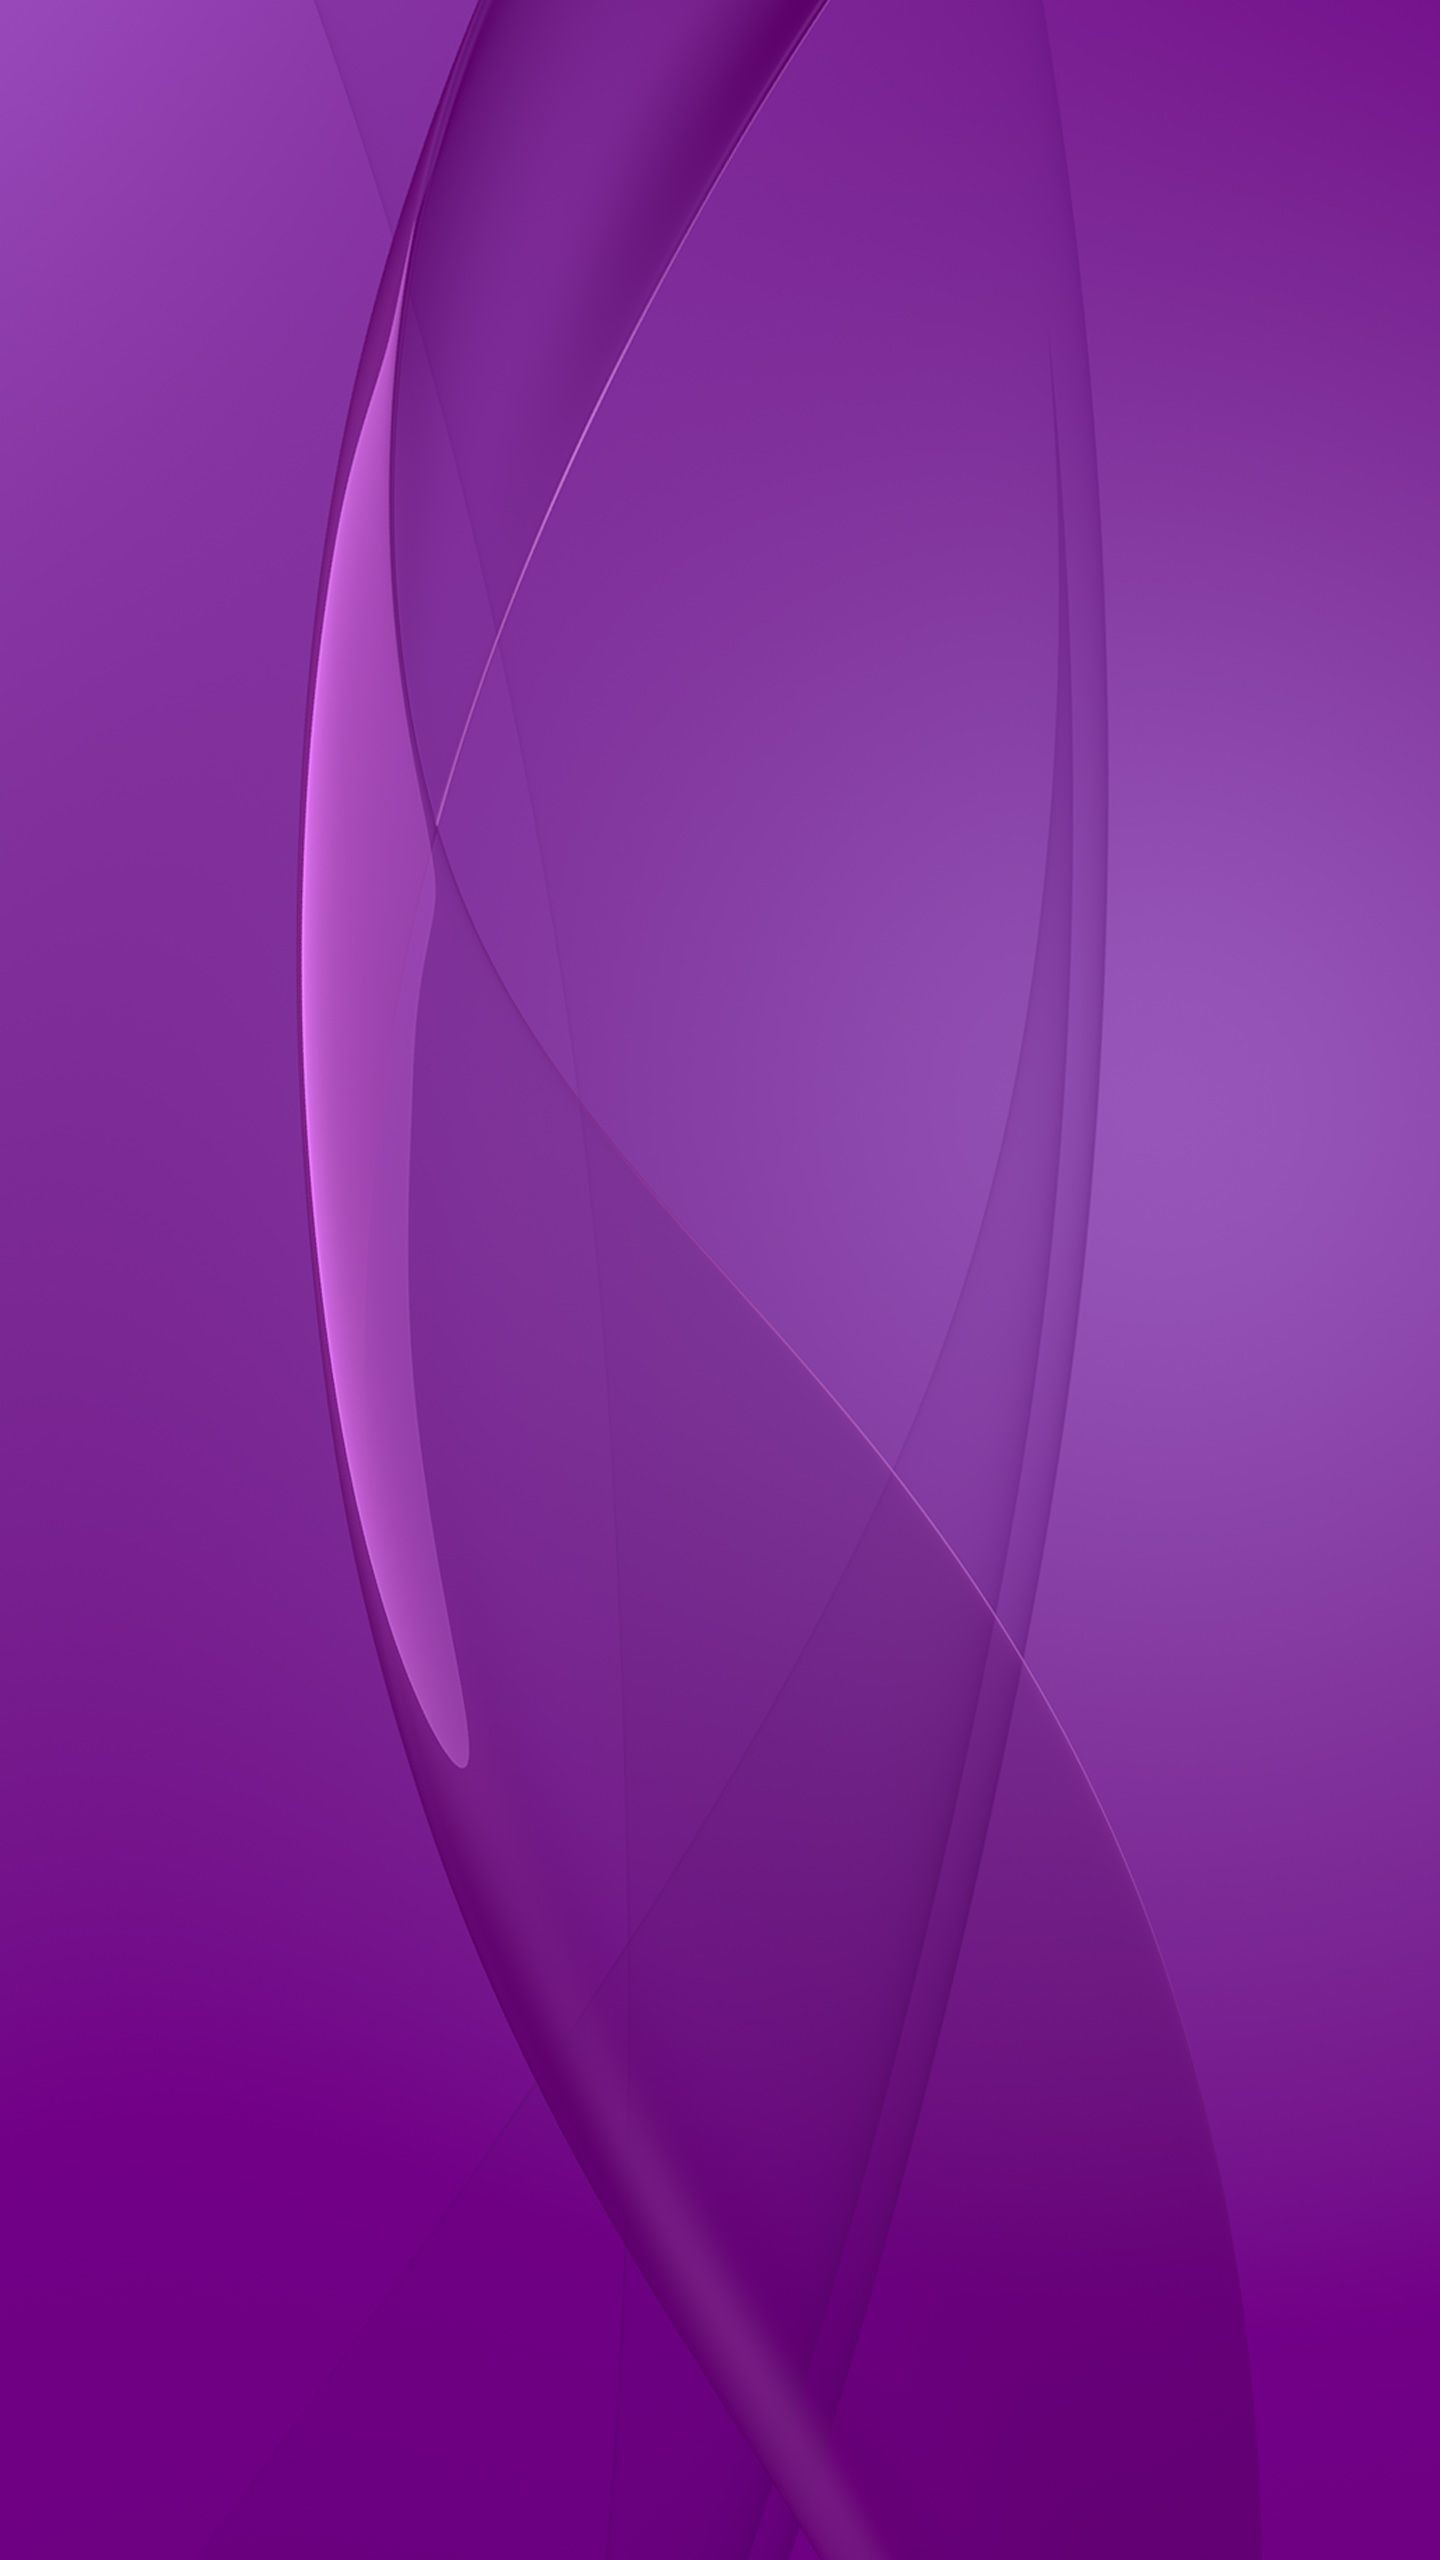 Purple Abstract Mobile Wallpaper https://wallpapers-and-backgrounds.net/